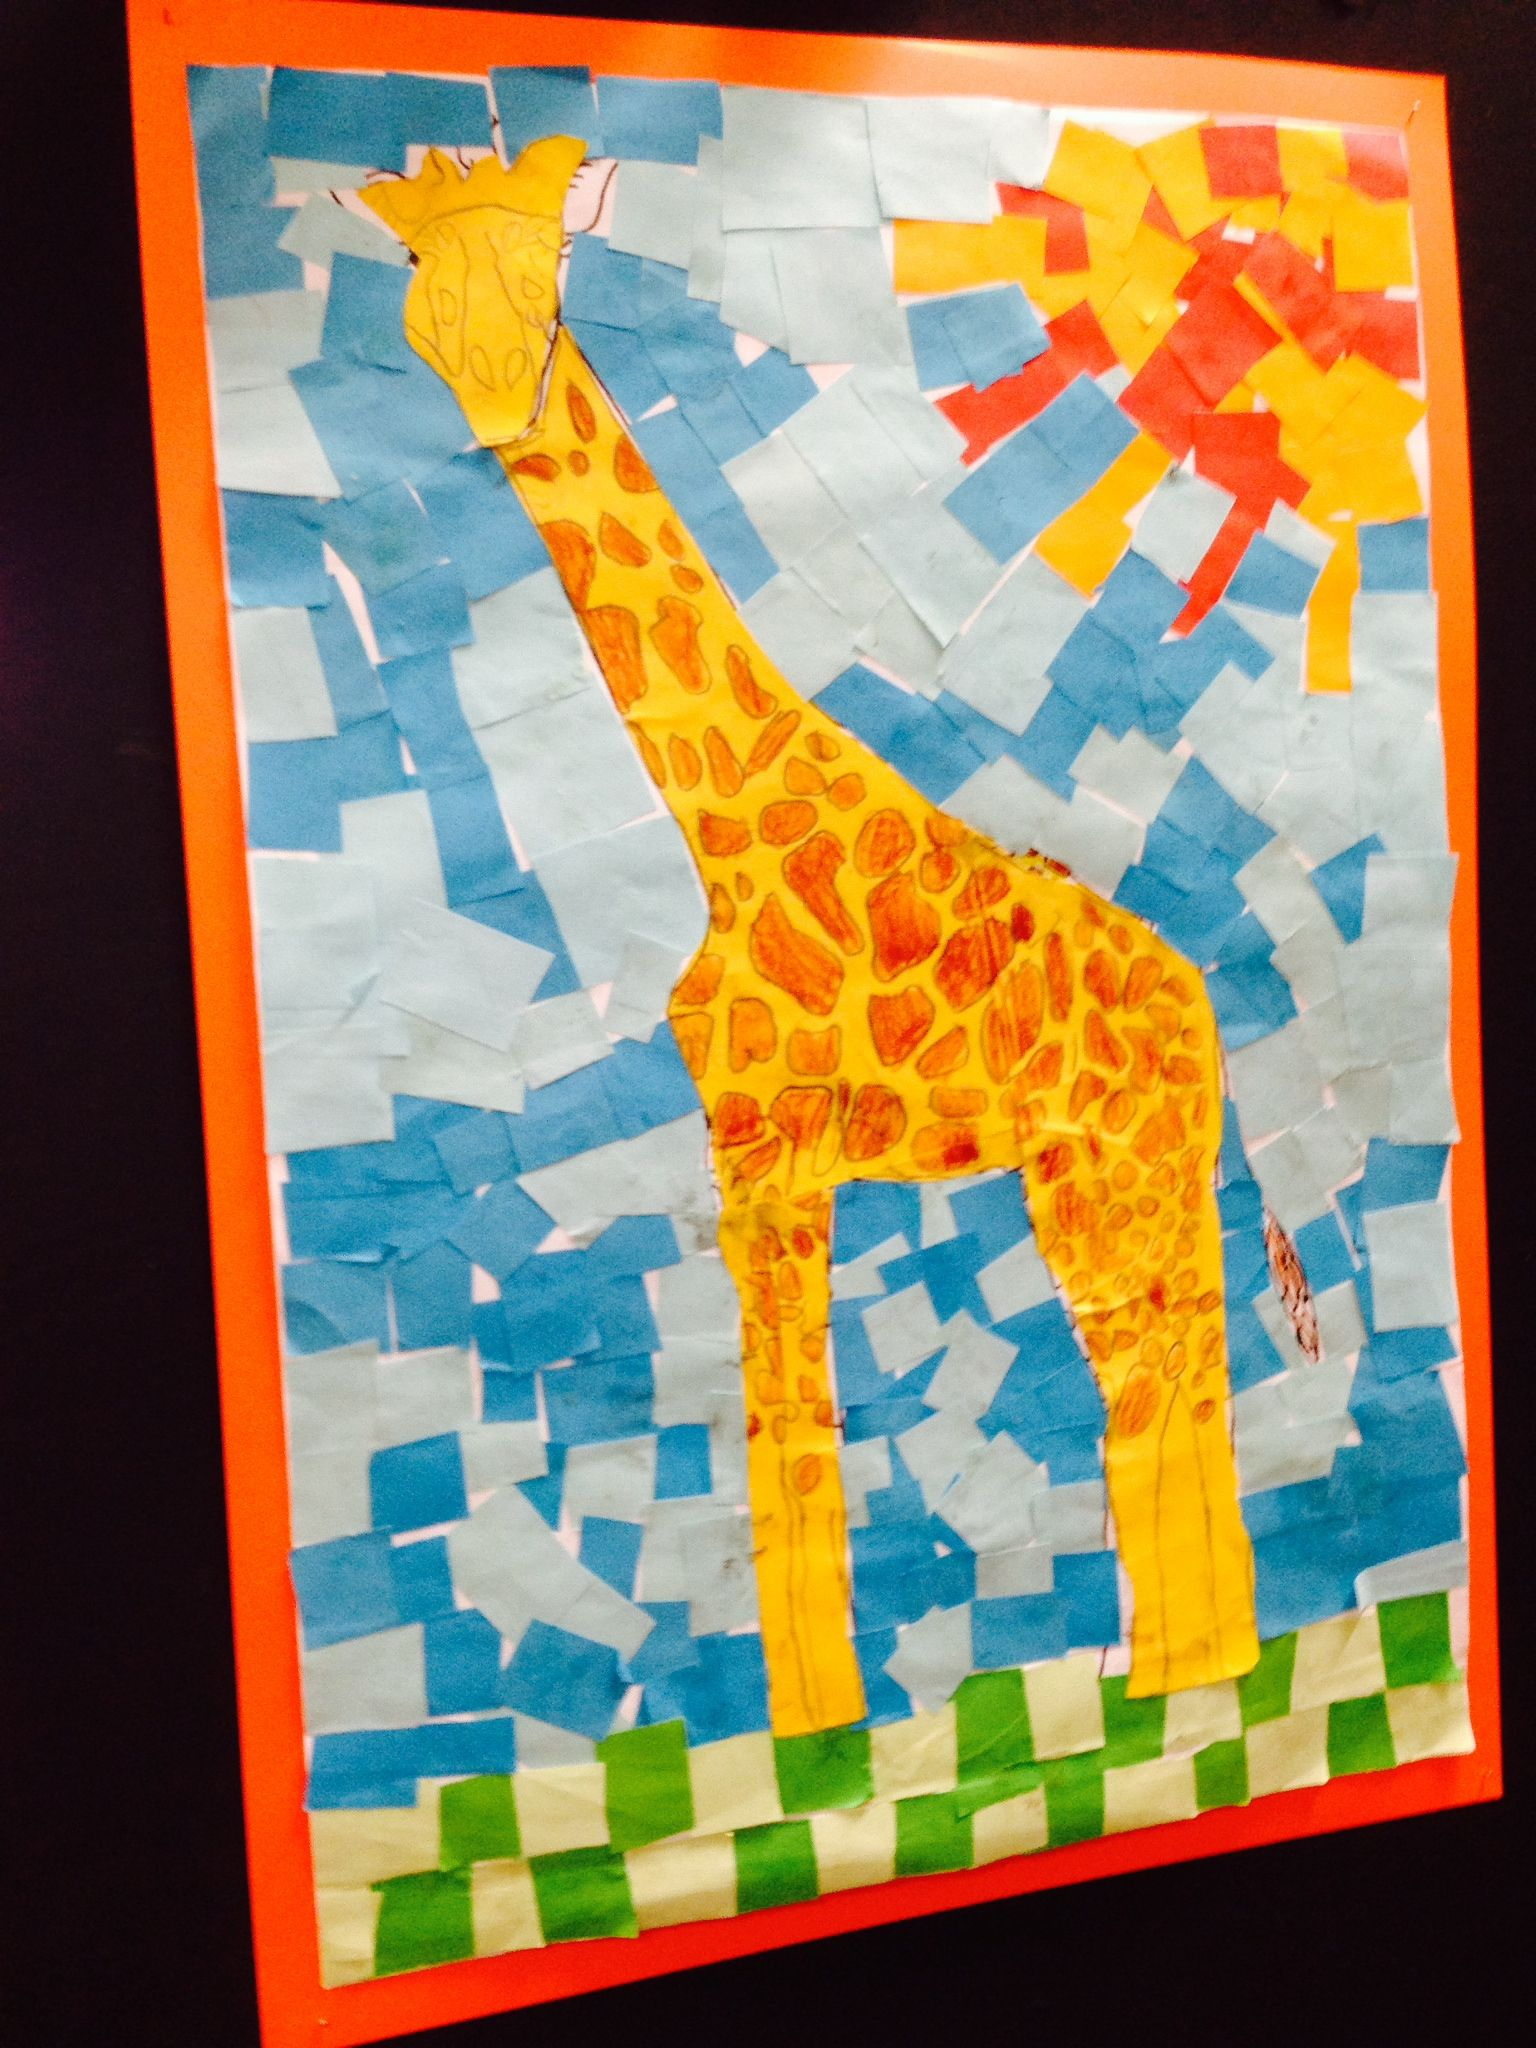 Giraffe collage kids | Collage | Pinterest | Giraffe, Collage and ...